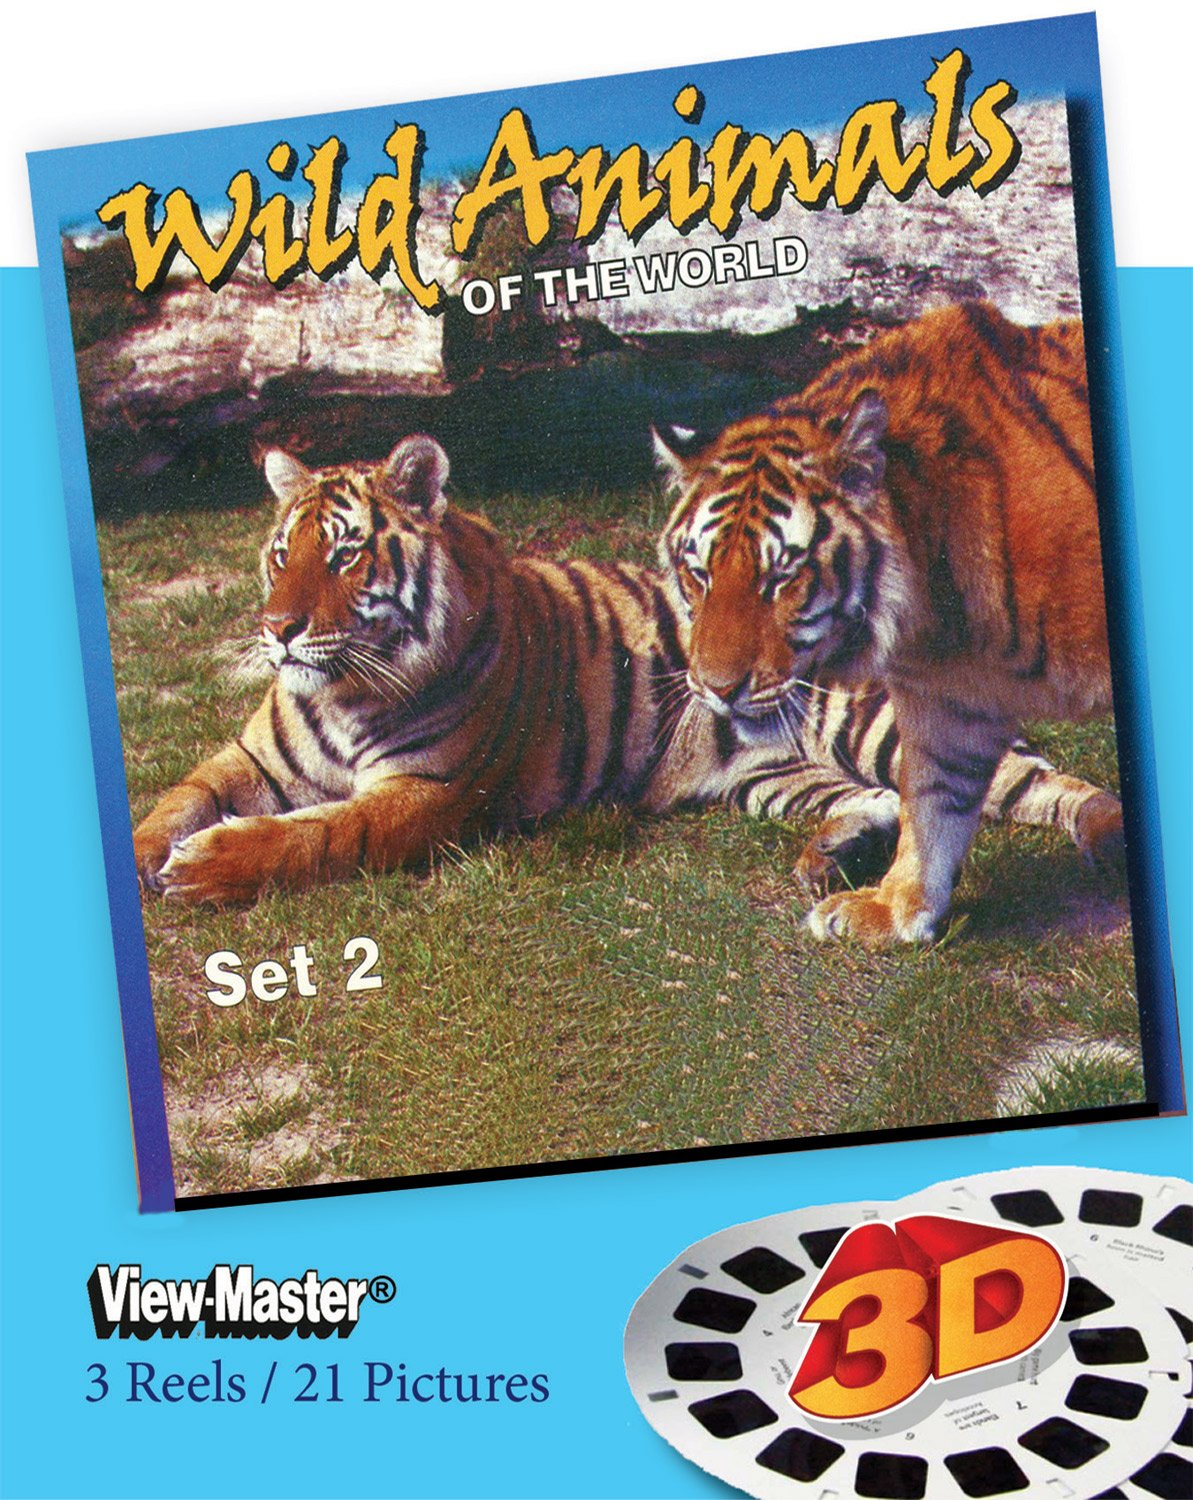 ViewMaster- Wild Animals of the World #2 - 3 Reels on Card - NEW by 3Dstereo ViewMaster (Image #1)